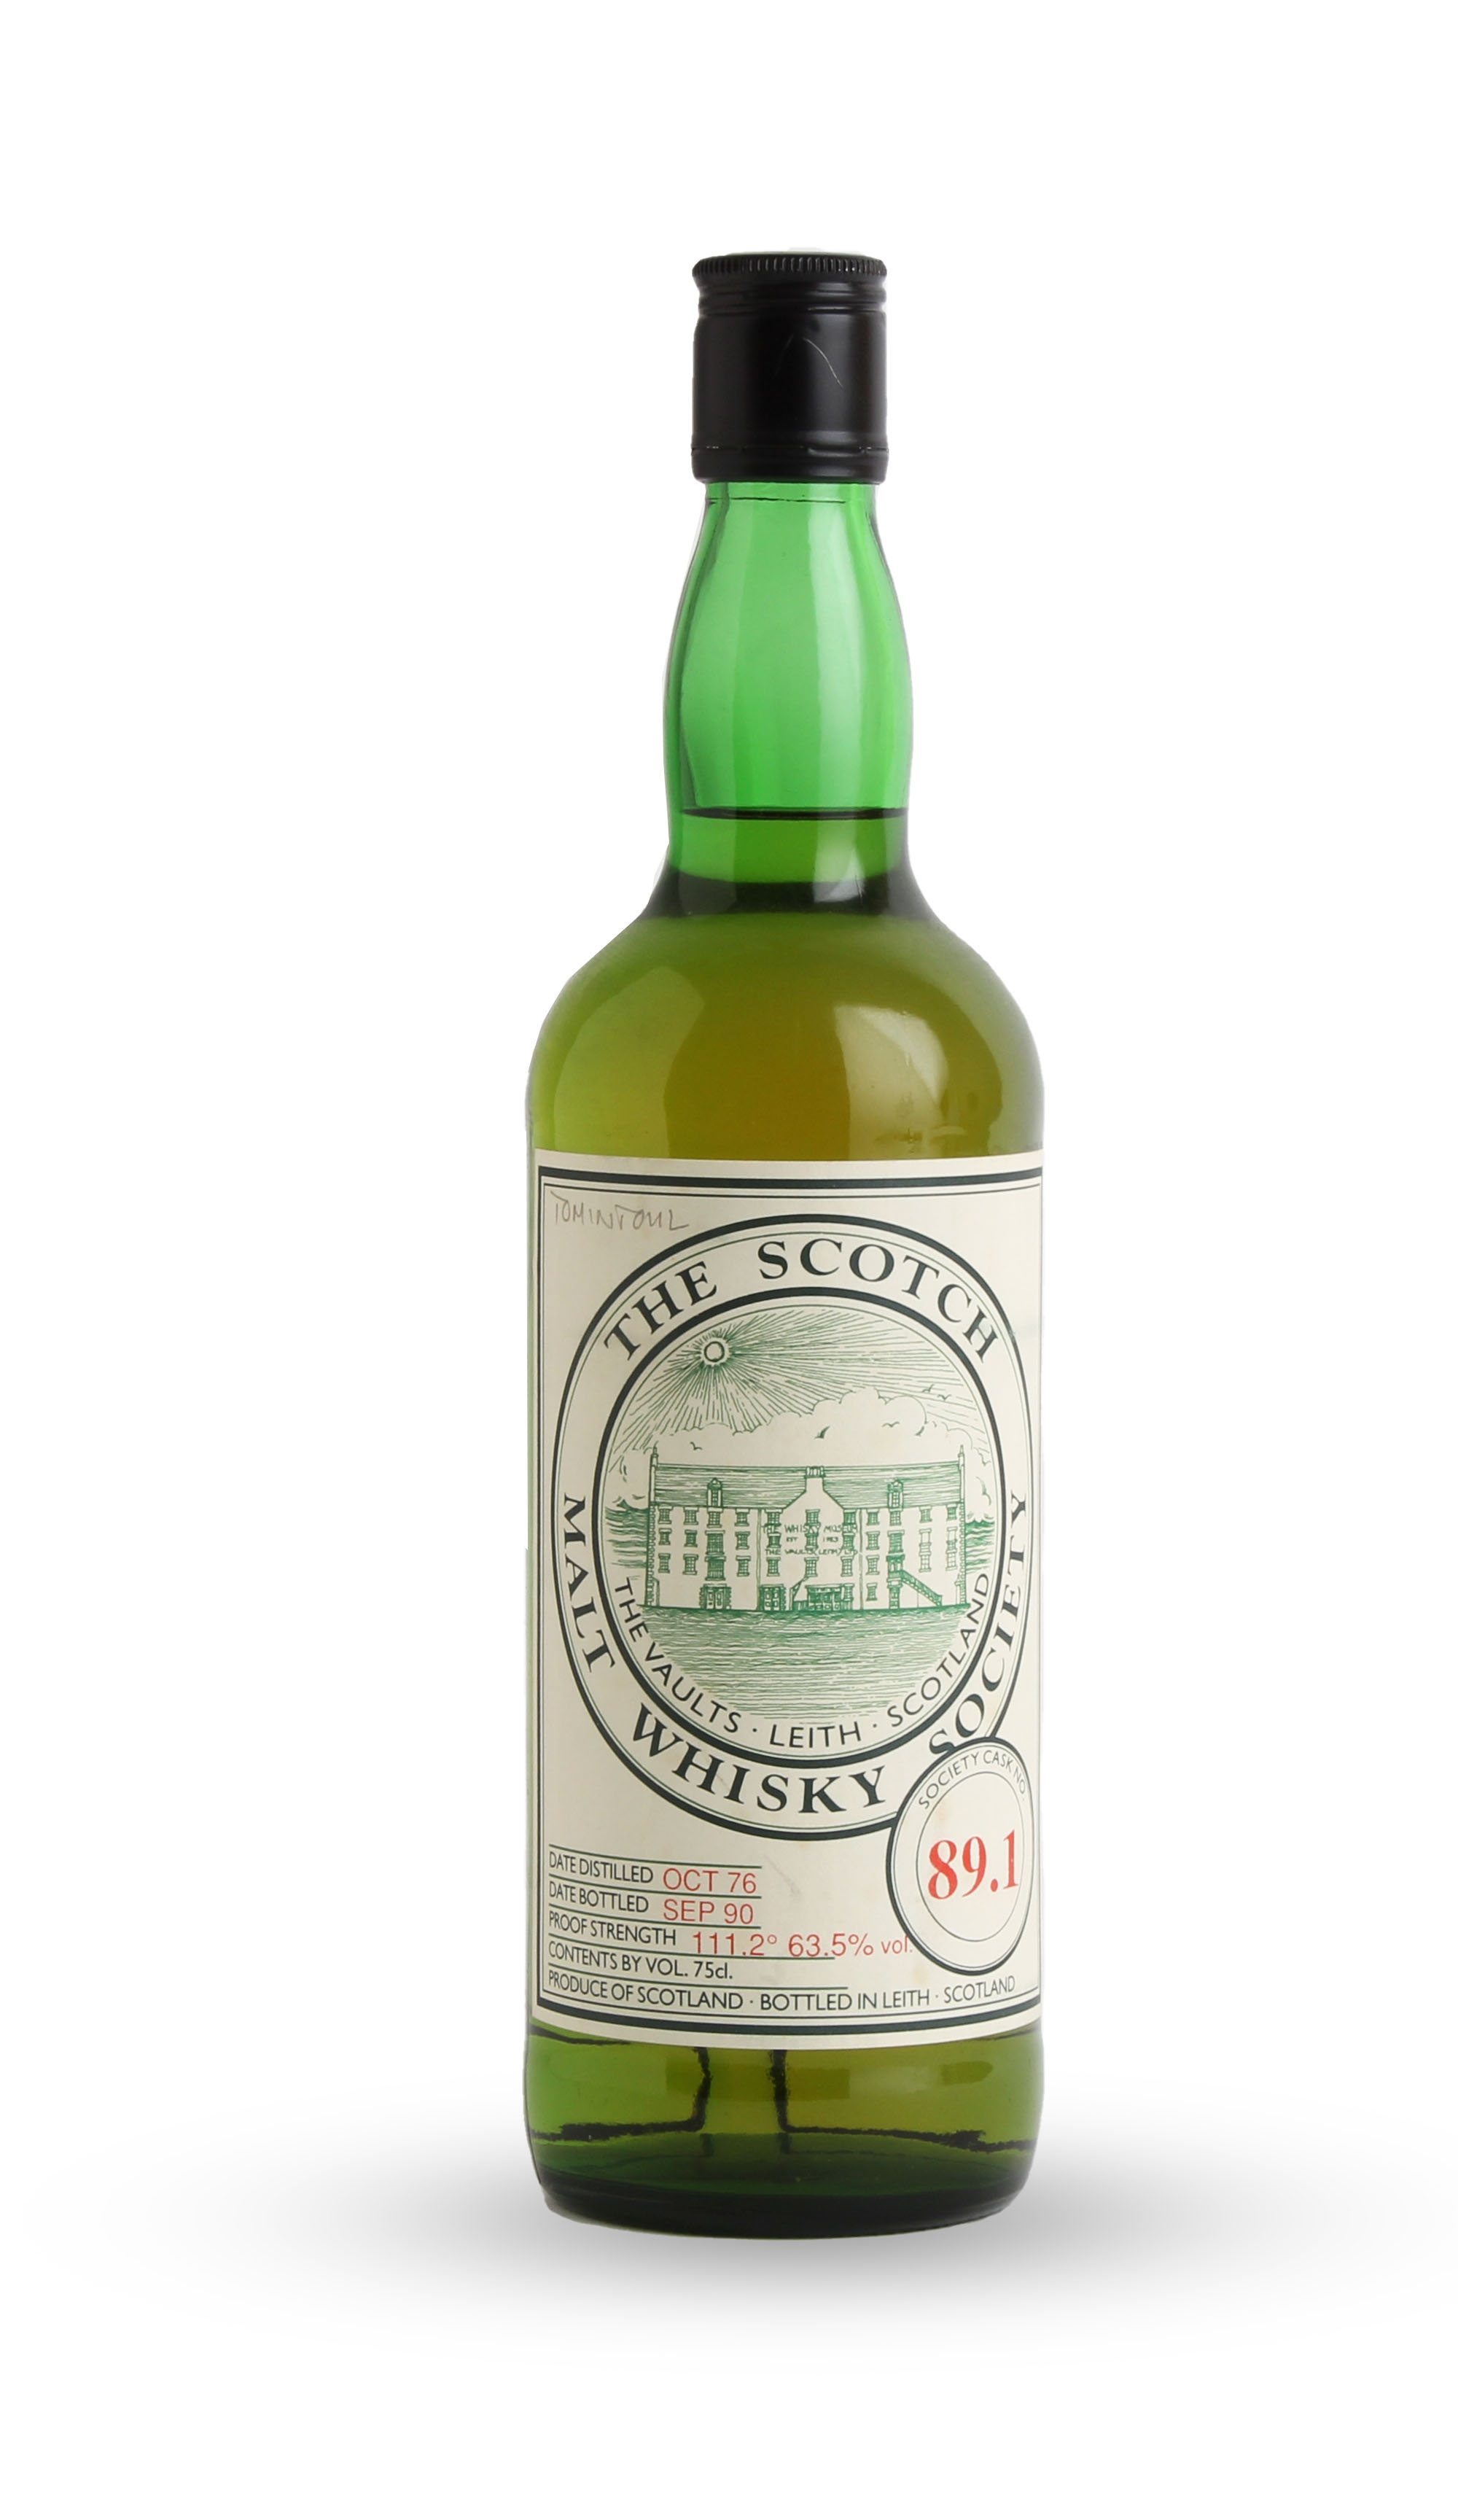 Tomintoul-1976 (SMWS 89.1)